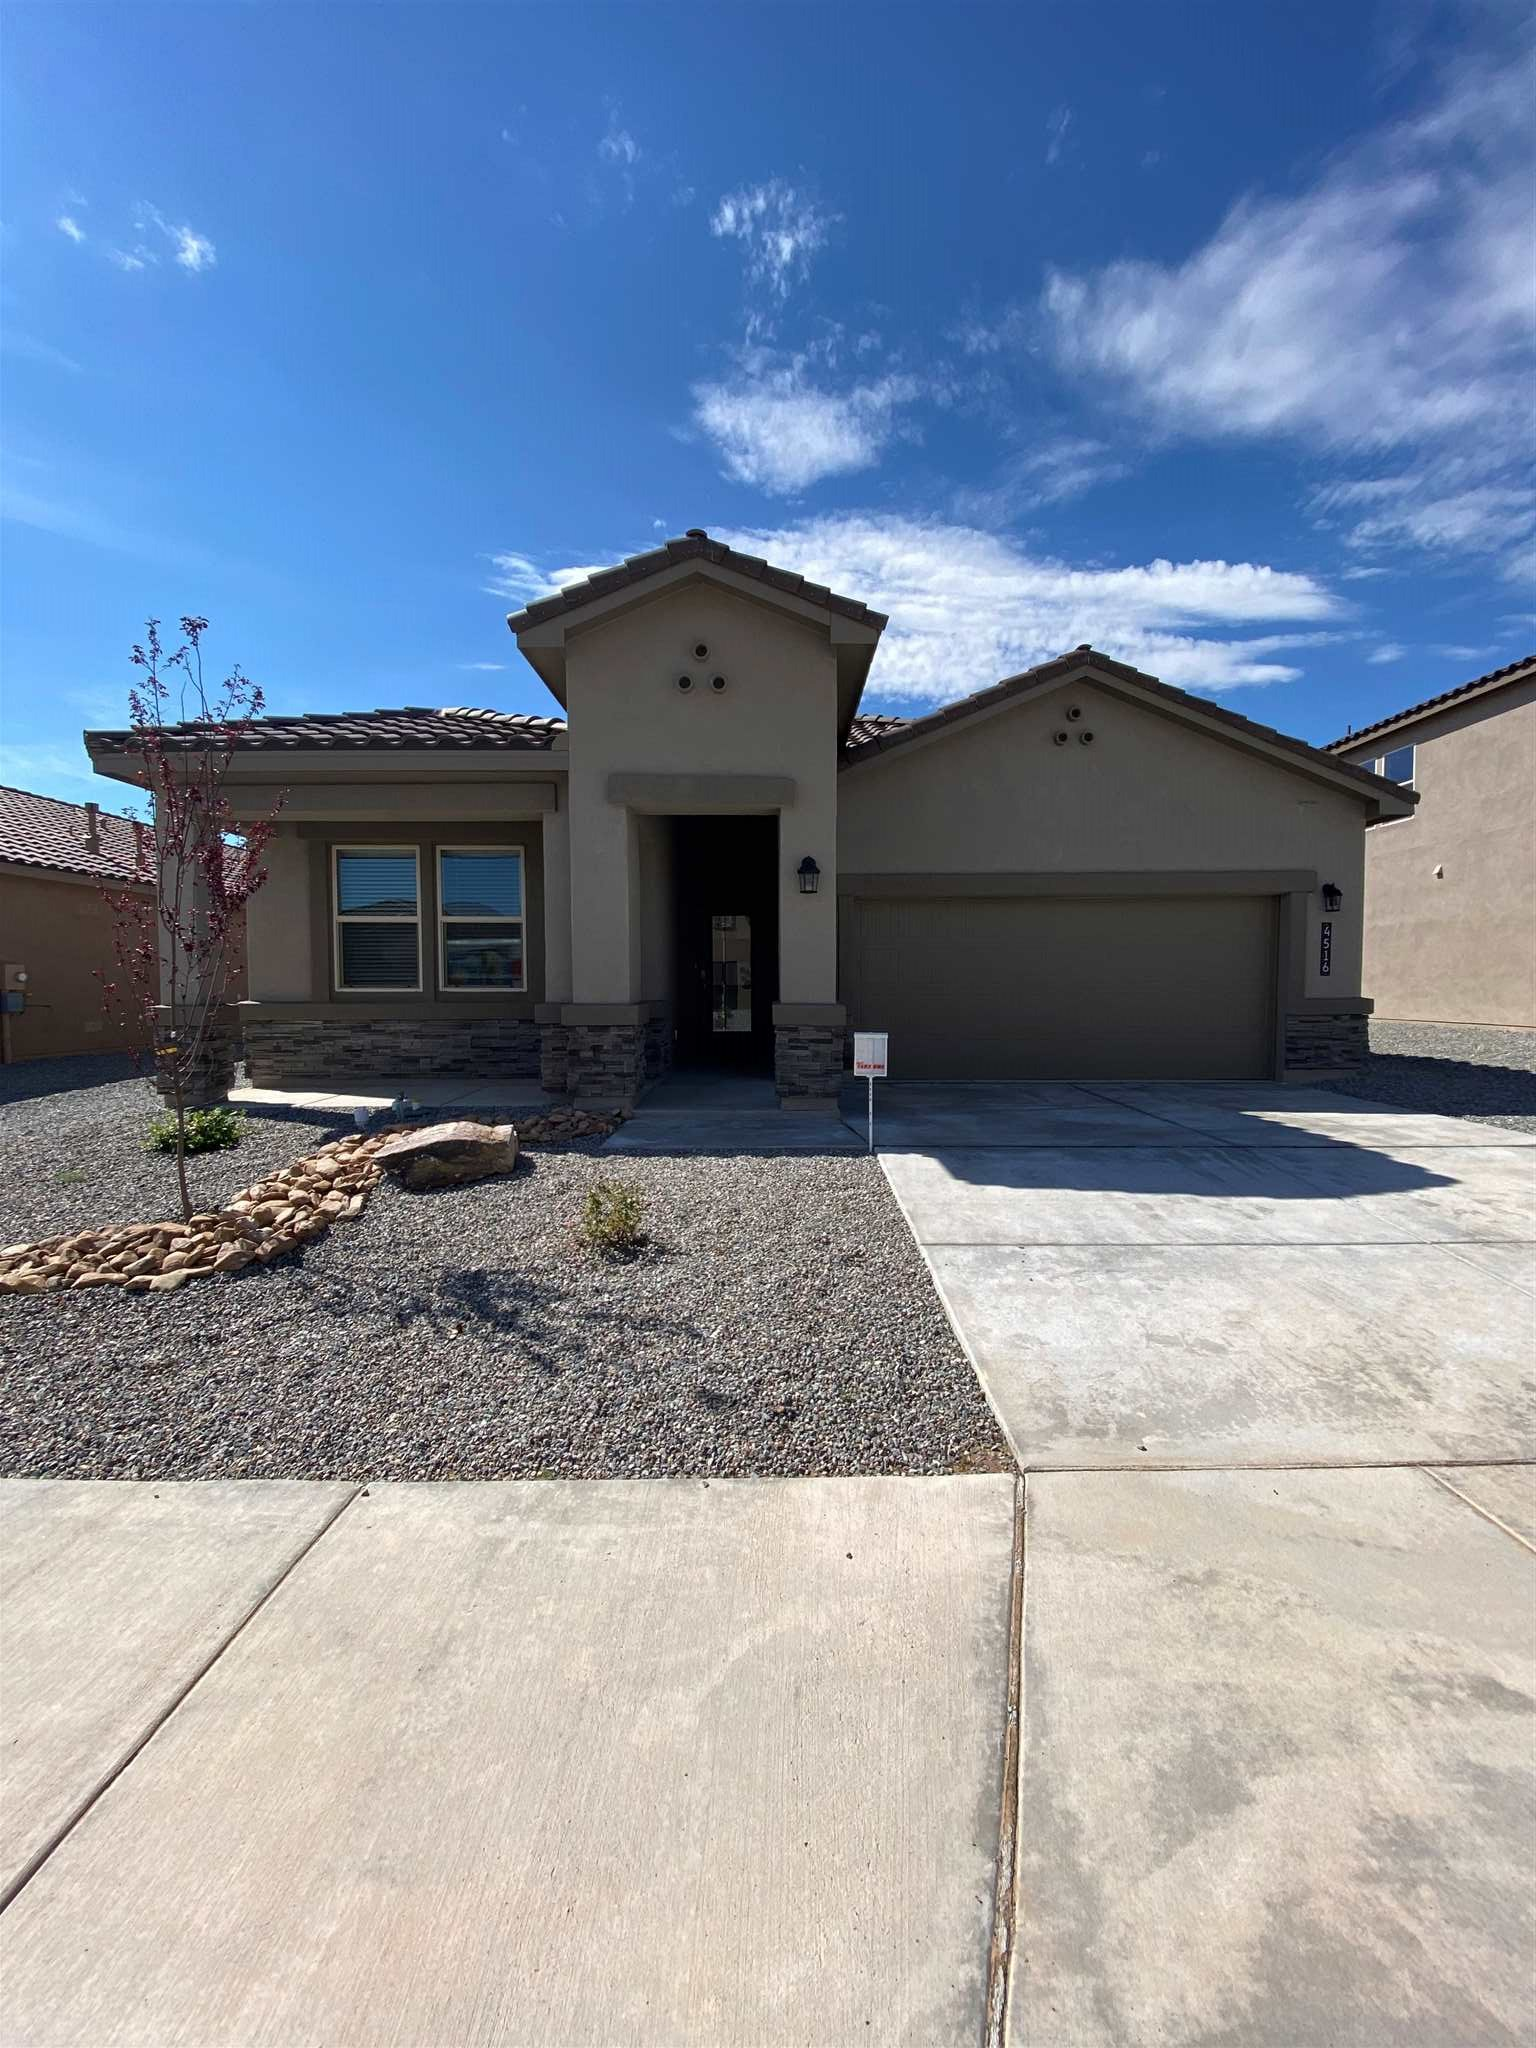 This gorgeous open concept single story home is a must see!  The sprawling kitchen gives the pickiest of chefs tons of cabinet and counter space.  The large kitchen island opens into the large family room.  Wall to wall tile covers the majority of this home with cozy carpet in the spacious bedrooms.  This brand new home provides modern construction, energy efficiency and comfort you can't miss!